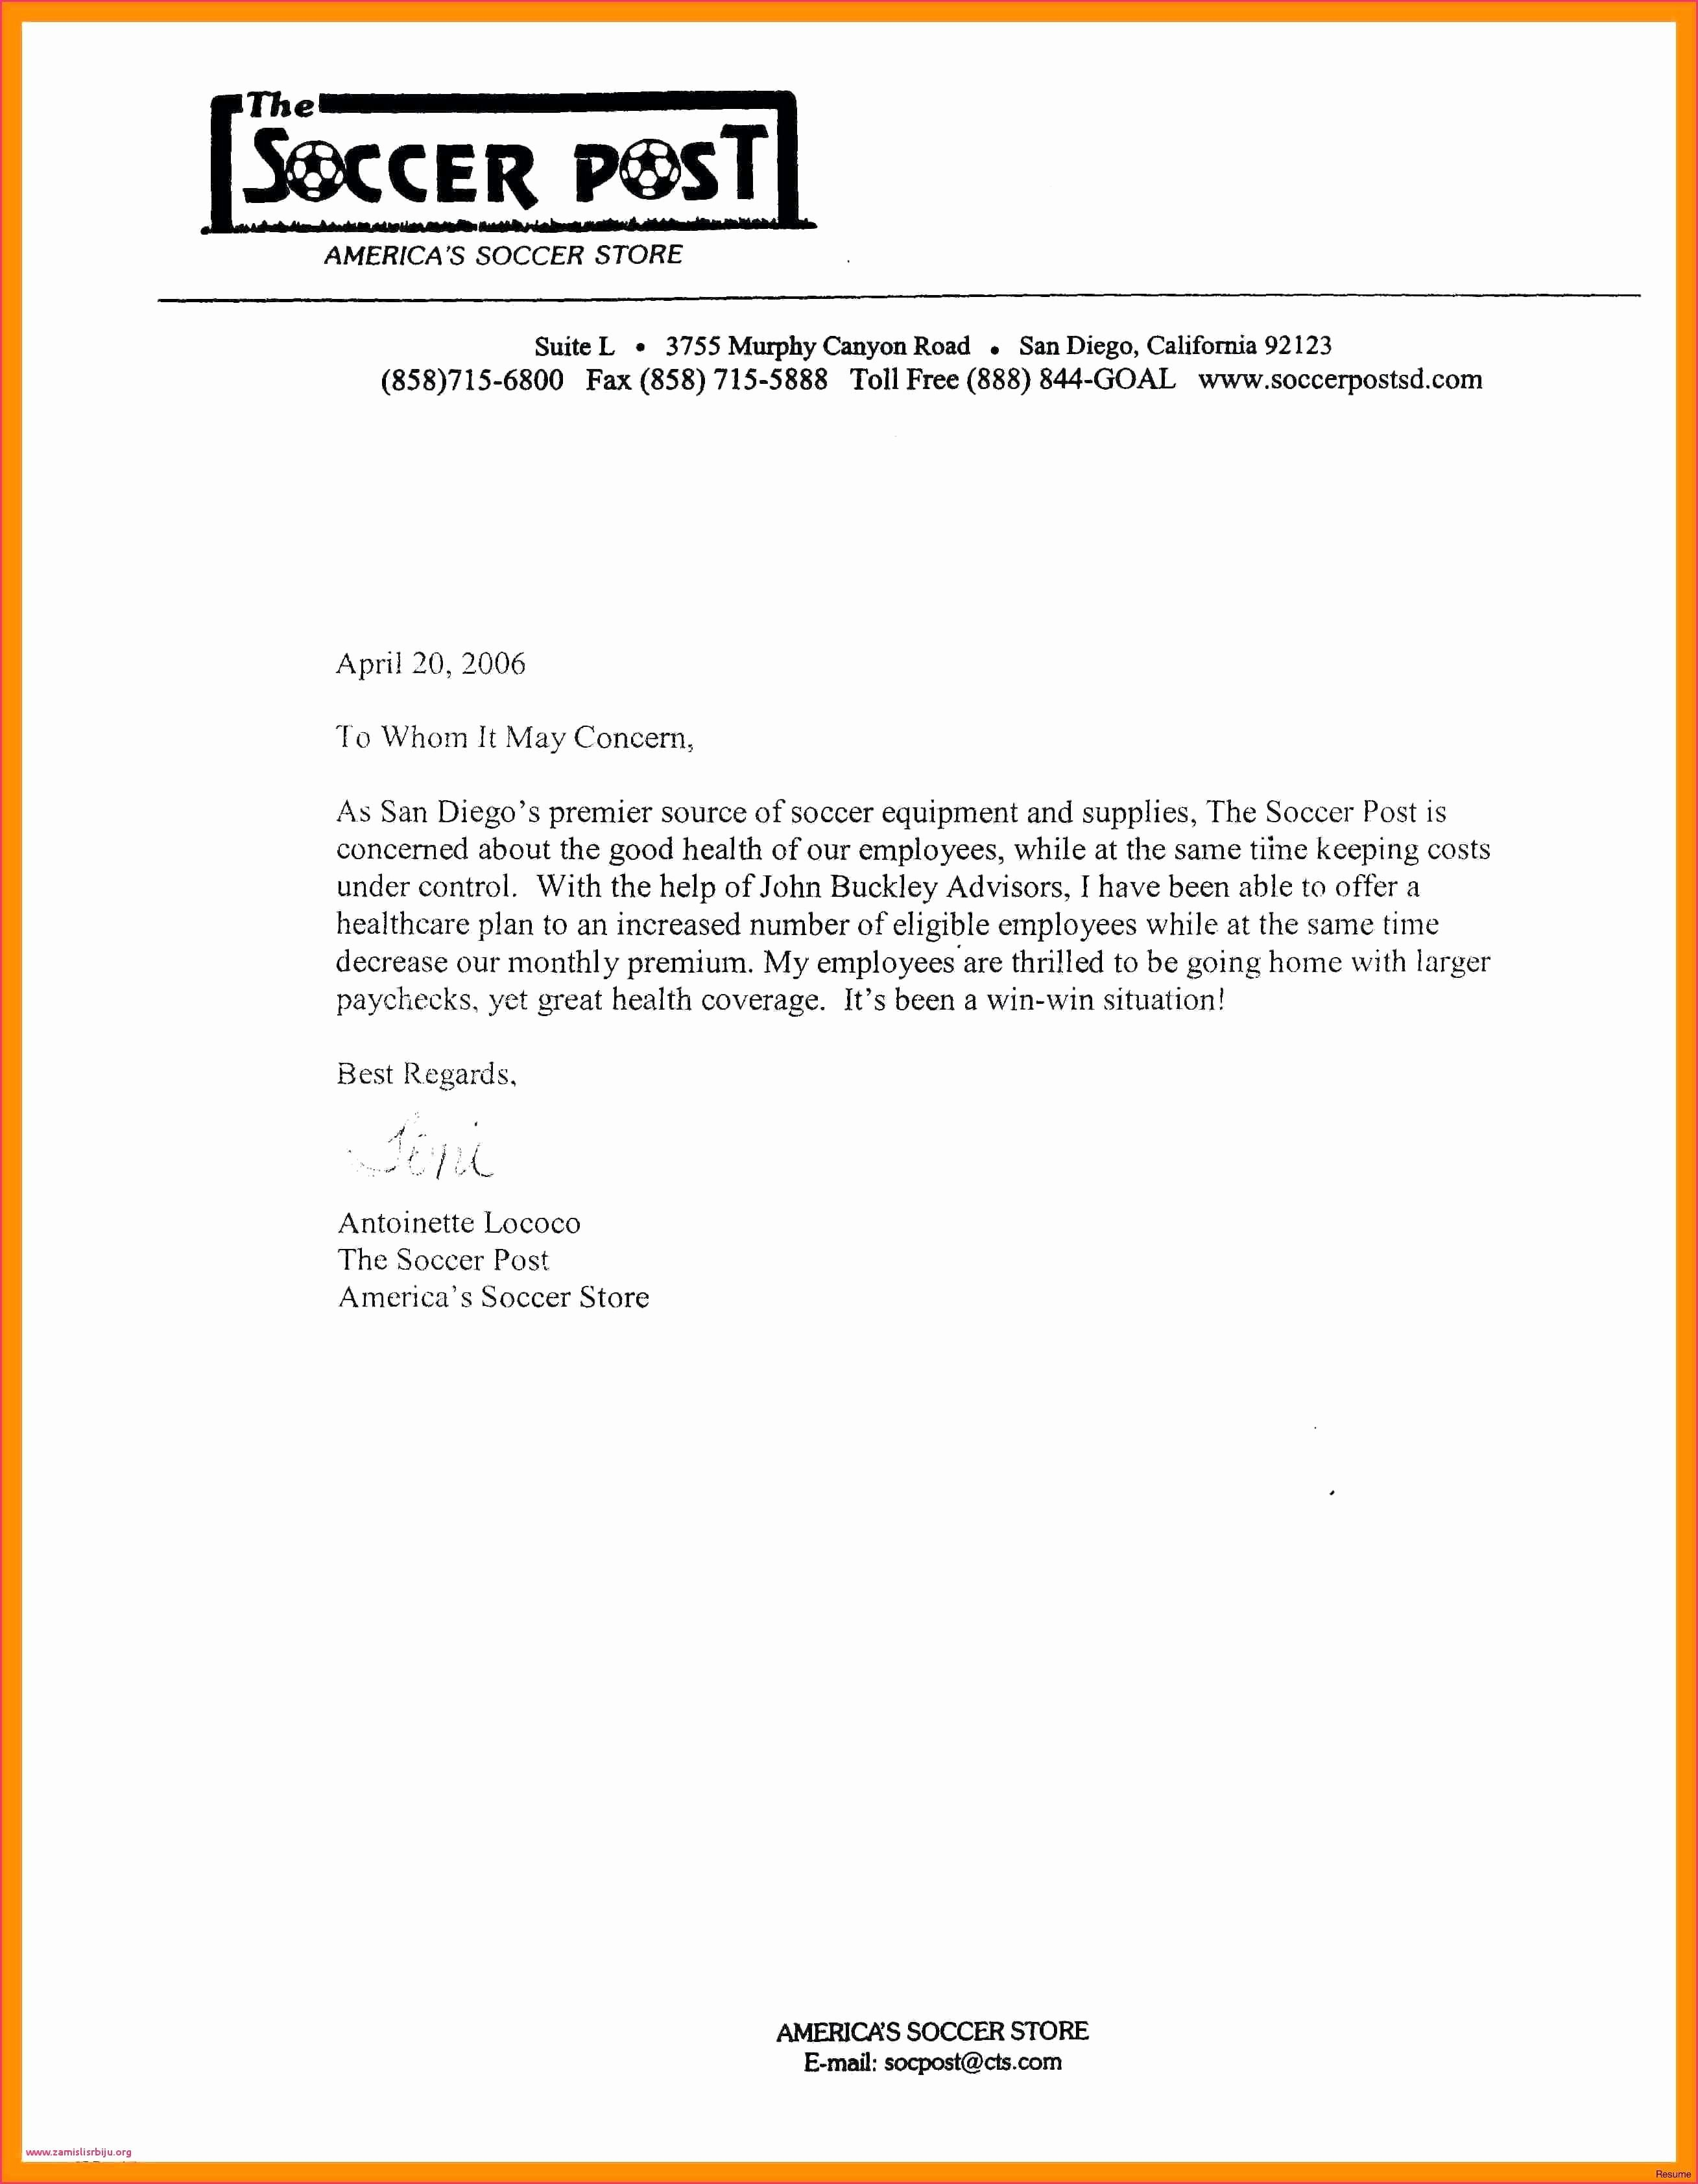 Real Estate Introduction Letter to Friends Template New Real Estate Introduction Letter Examples Sample Template